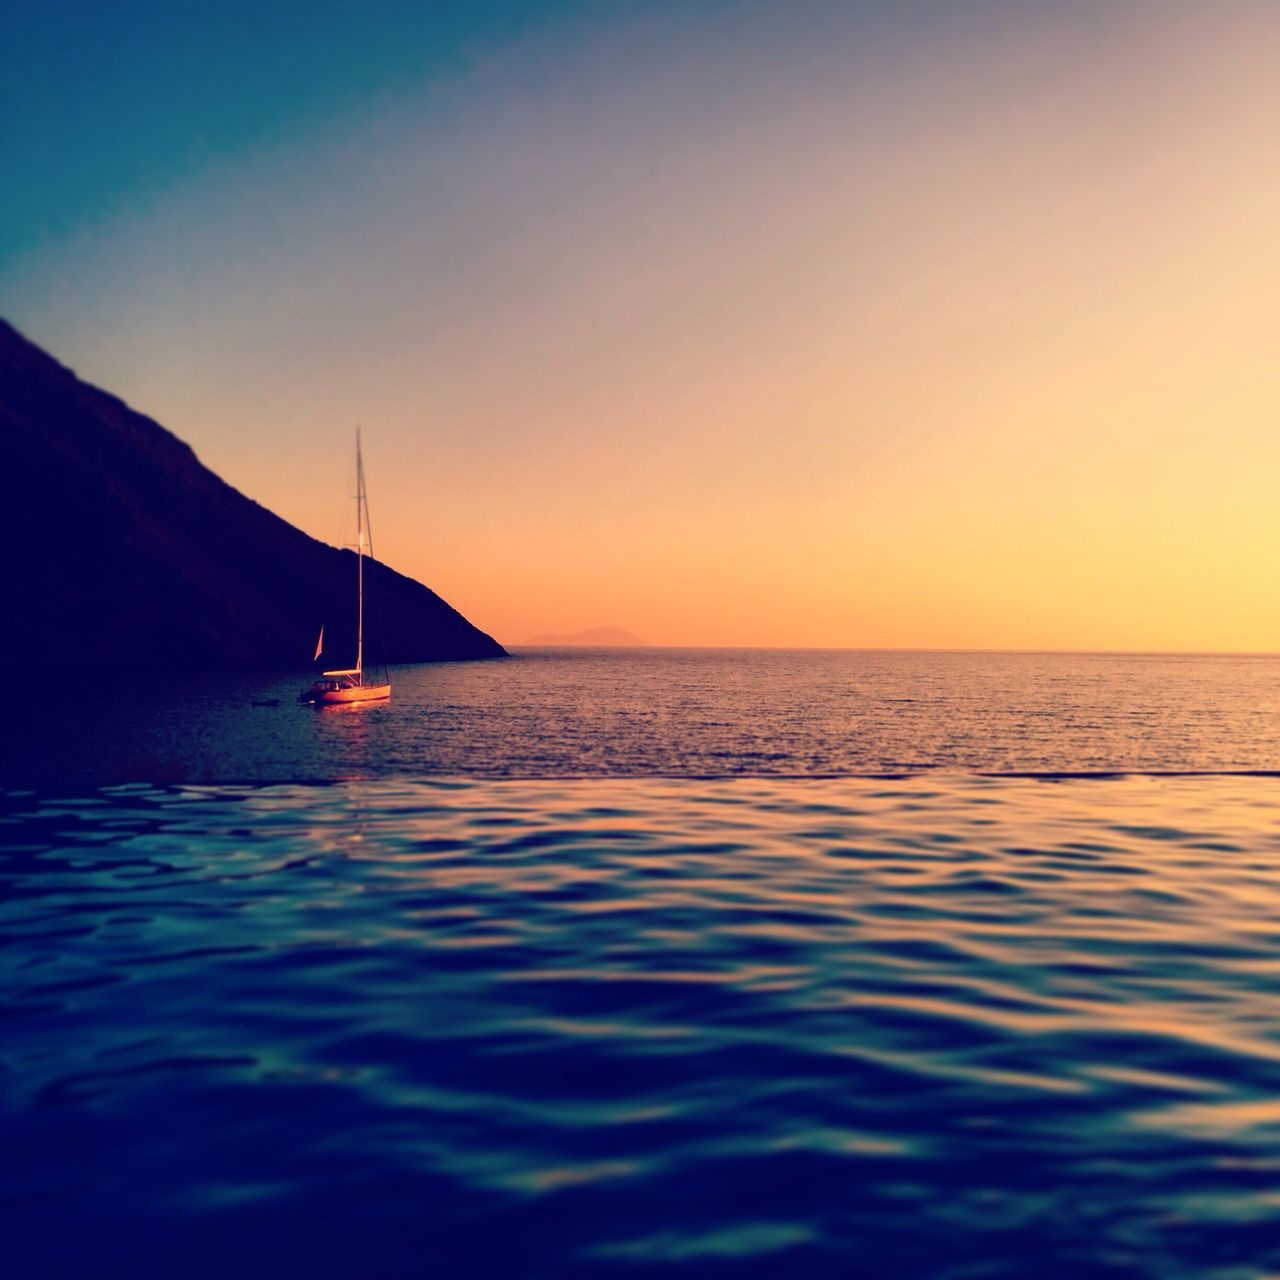 Sunset Beauty In Nature Sea Water Tranquility Tranquil Scene Nature Scenics Sky No People Idyllic Nautical Vessel Outdoors Sailboat Boat Sunlight Sunset_collection Sunset_captures Pool Greece